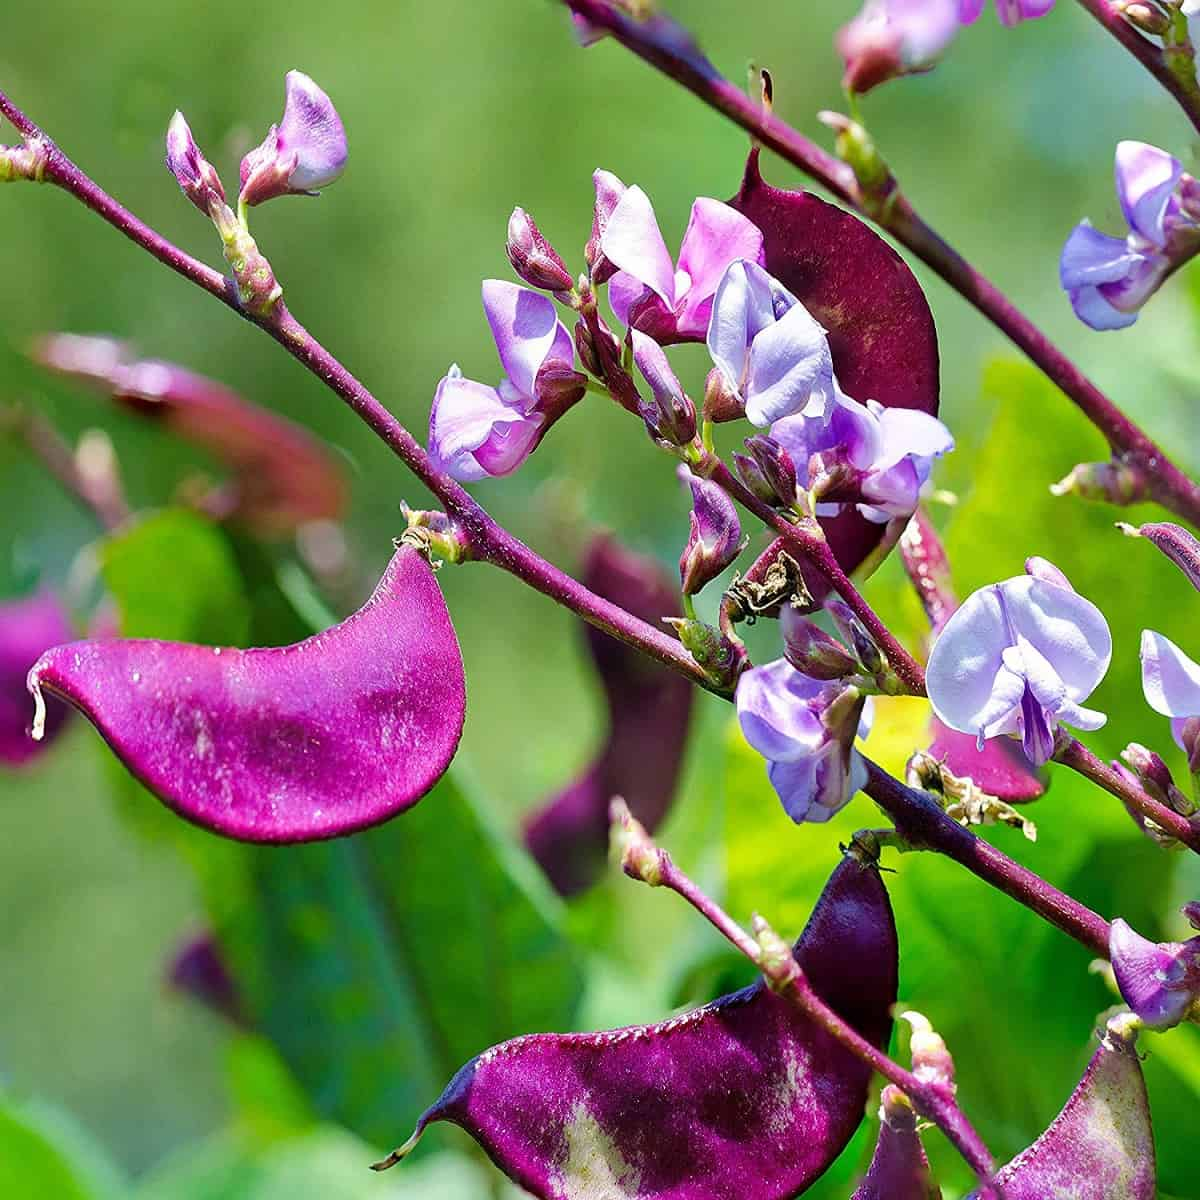 purple hyacinth bean flowers image